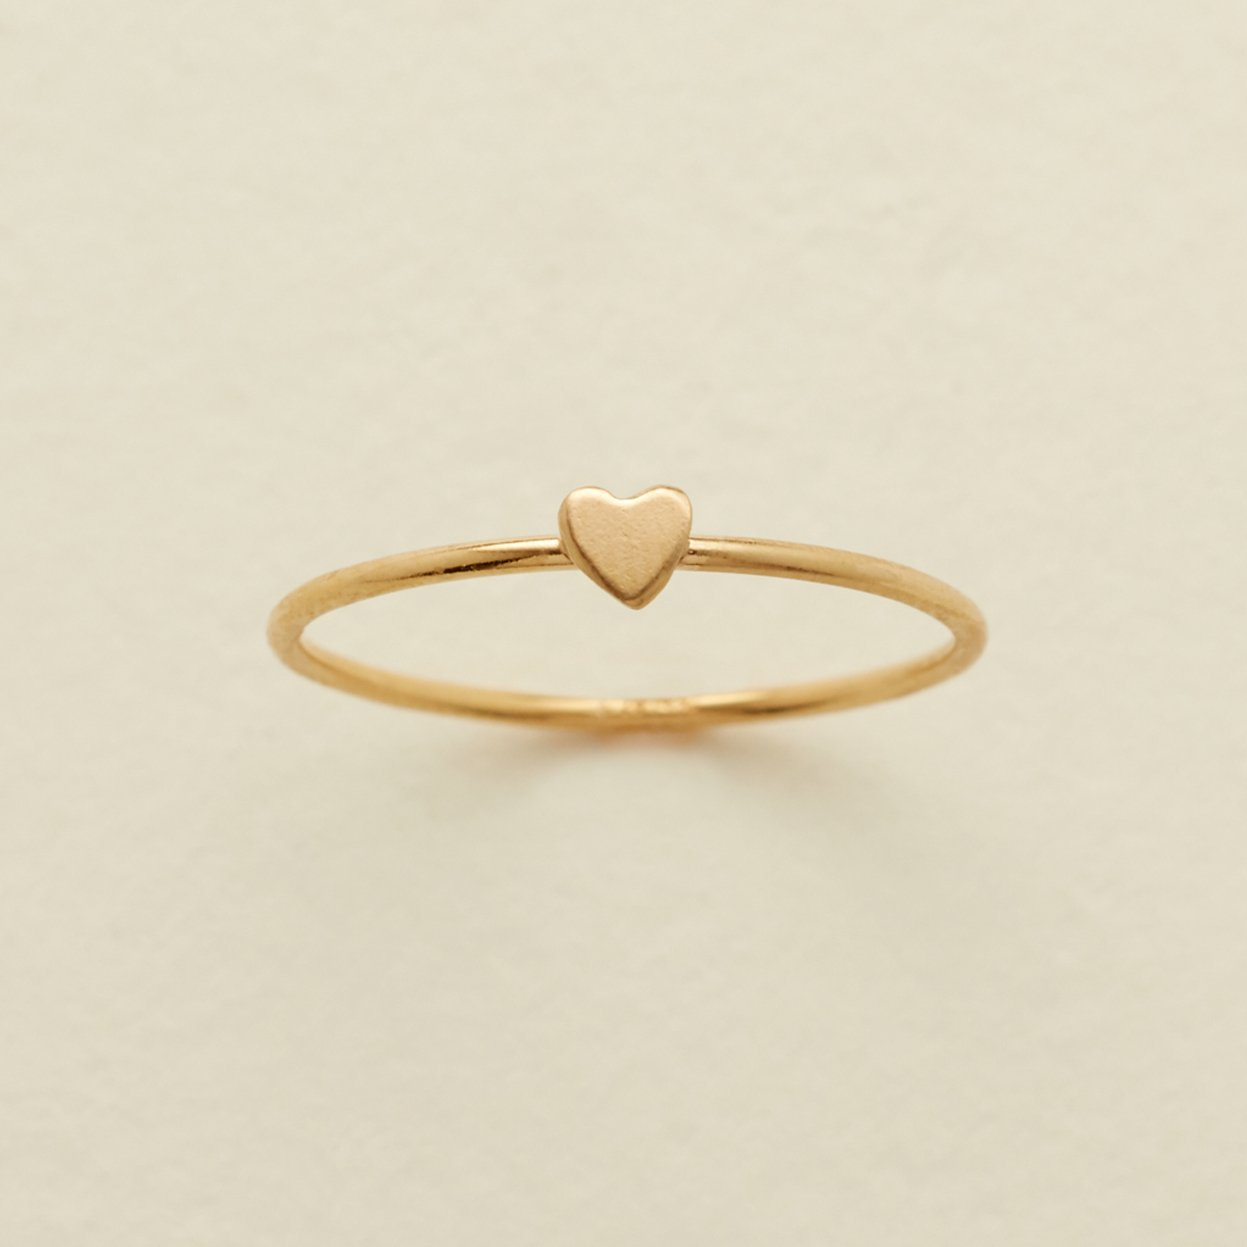 925 Sterling Silver Personalized Heart Ring Yellow Gold Plated - onlyone